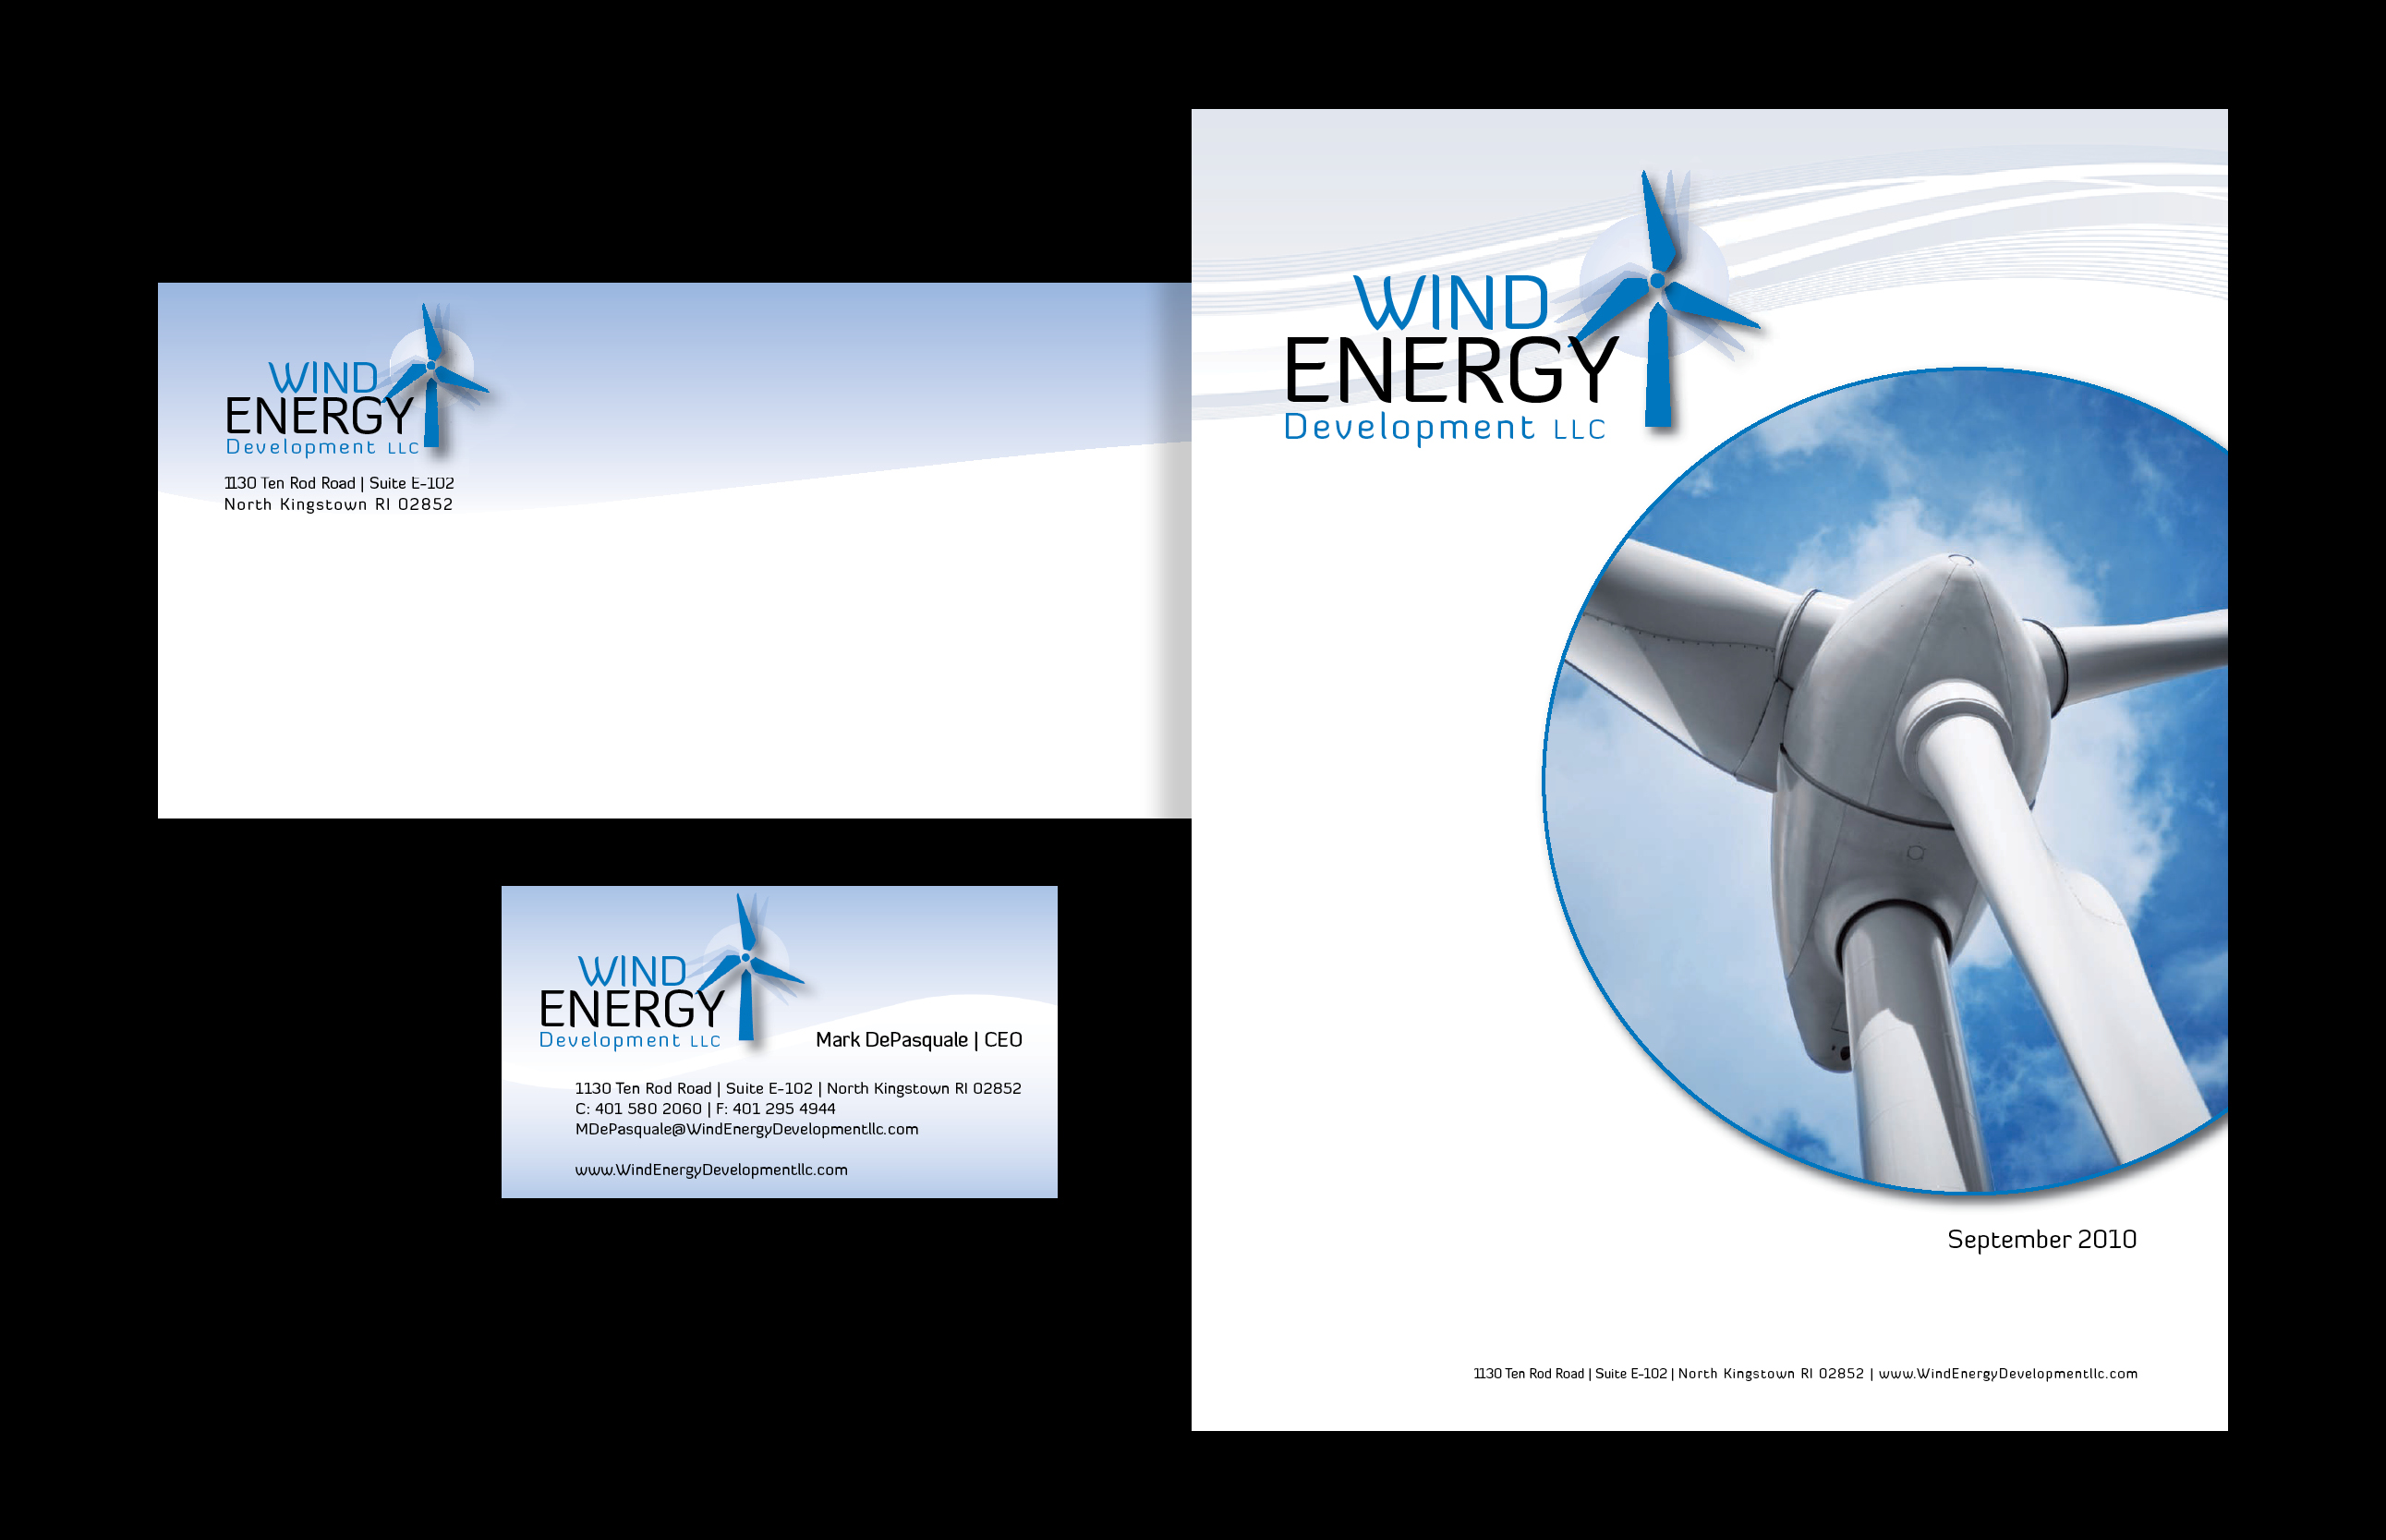 Wind Energy Development Branding